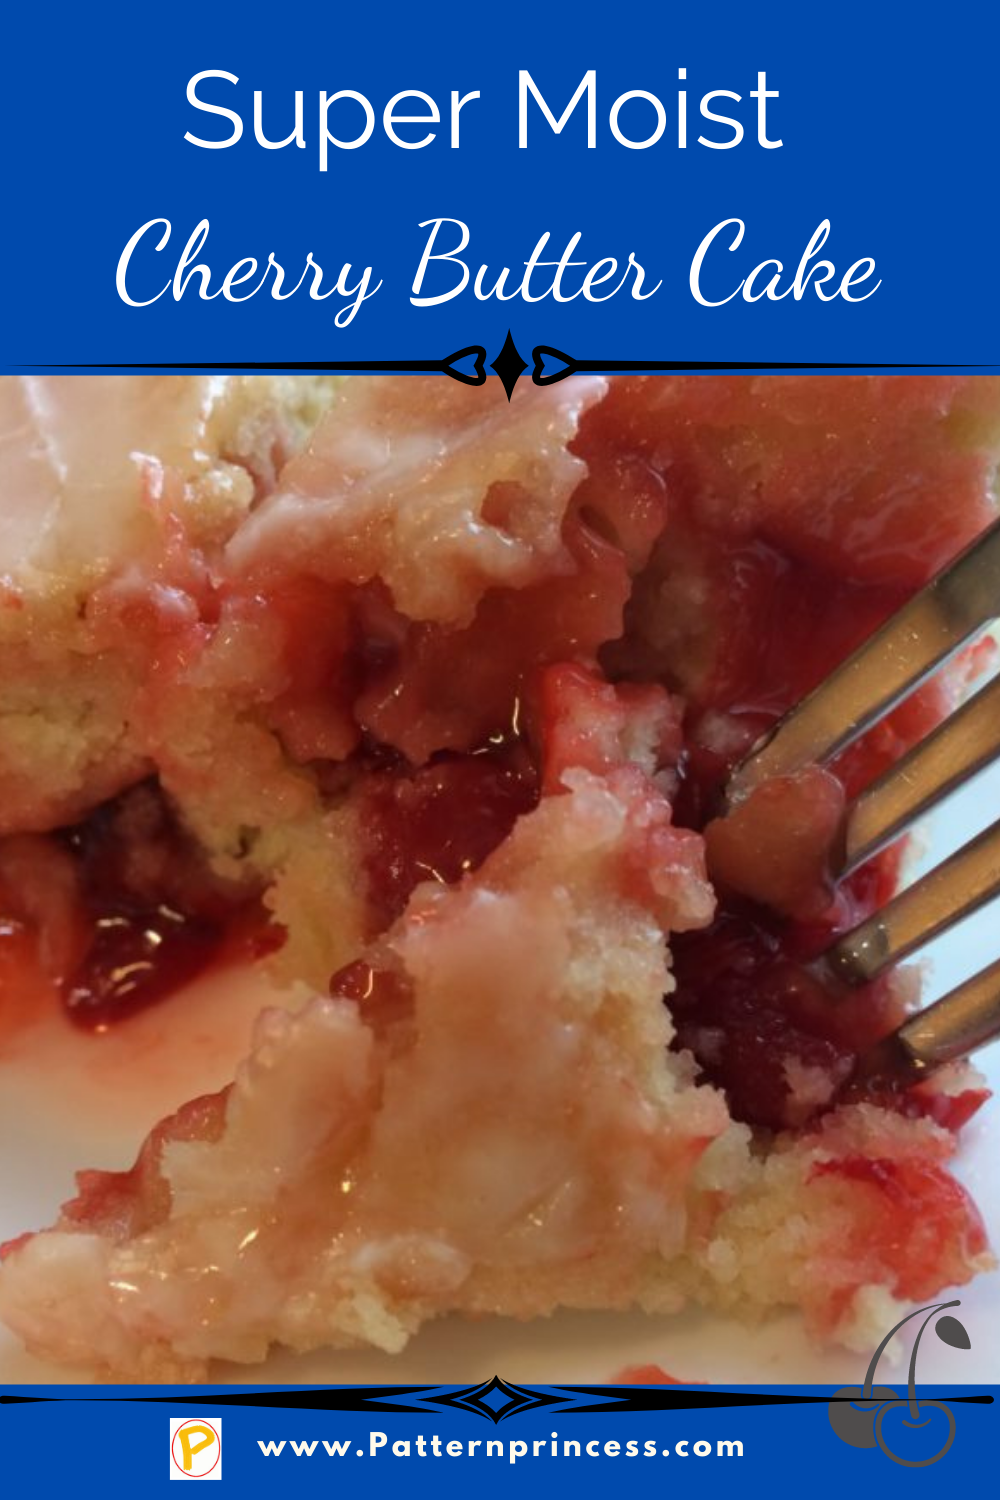 Super Moist Cherry Butter Cake